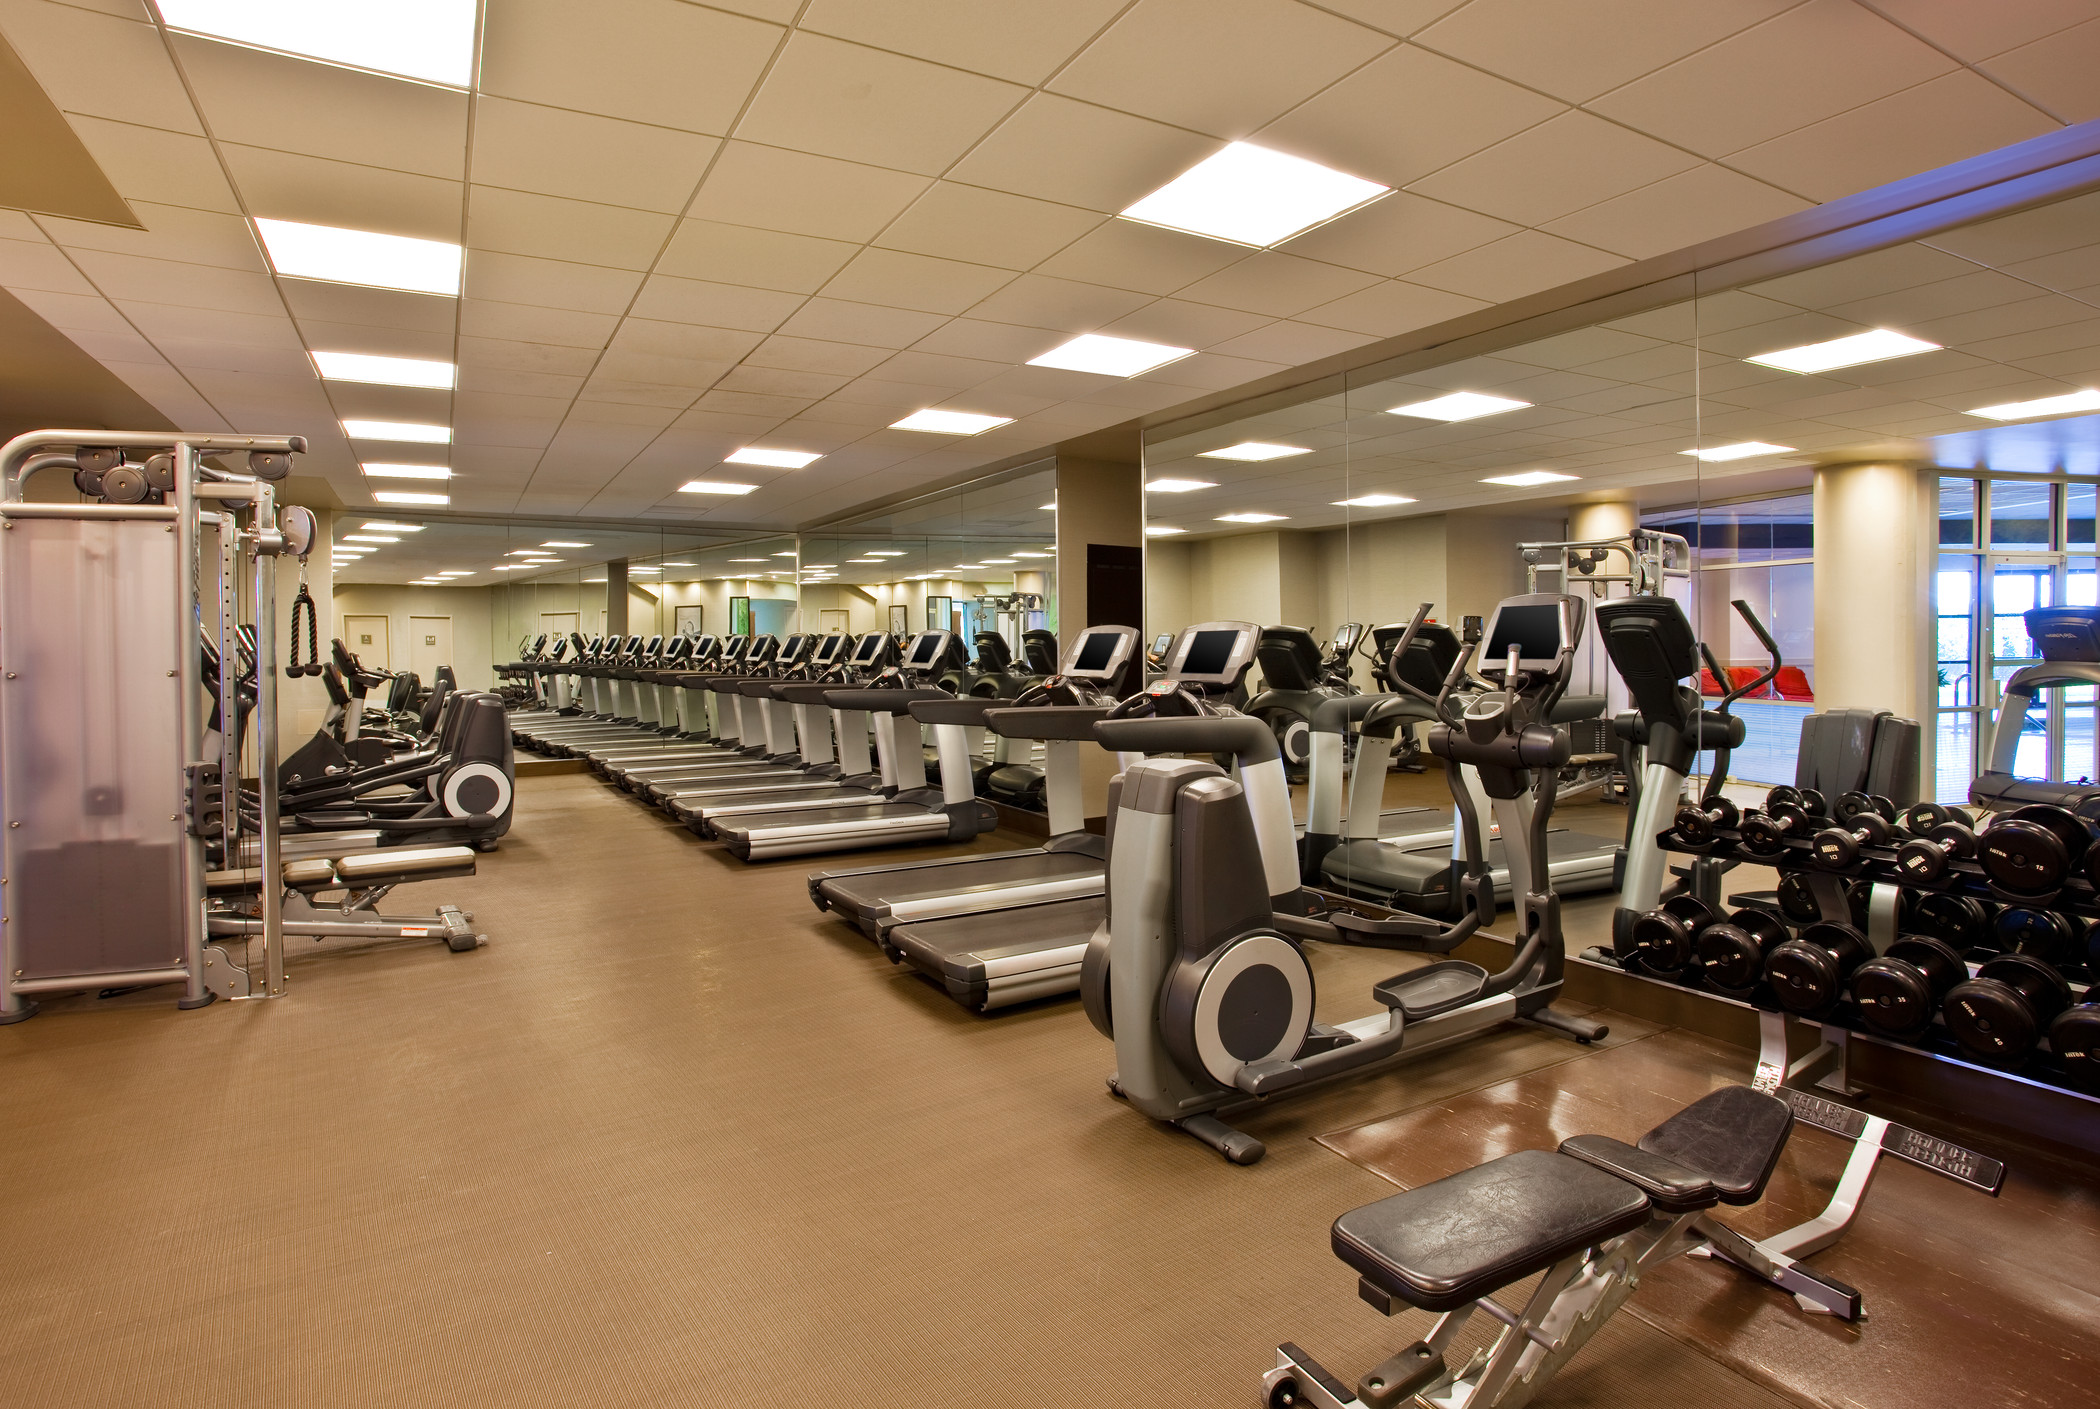 Westinworkout fitness studio the westin waltham boston for 24 hour tanning salon las vegas